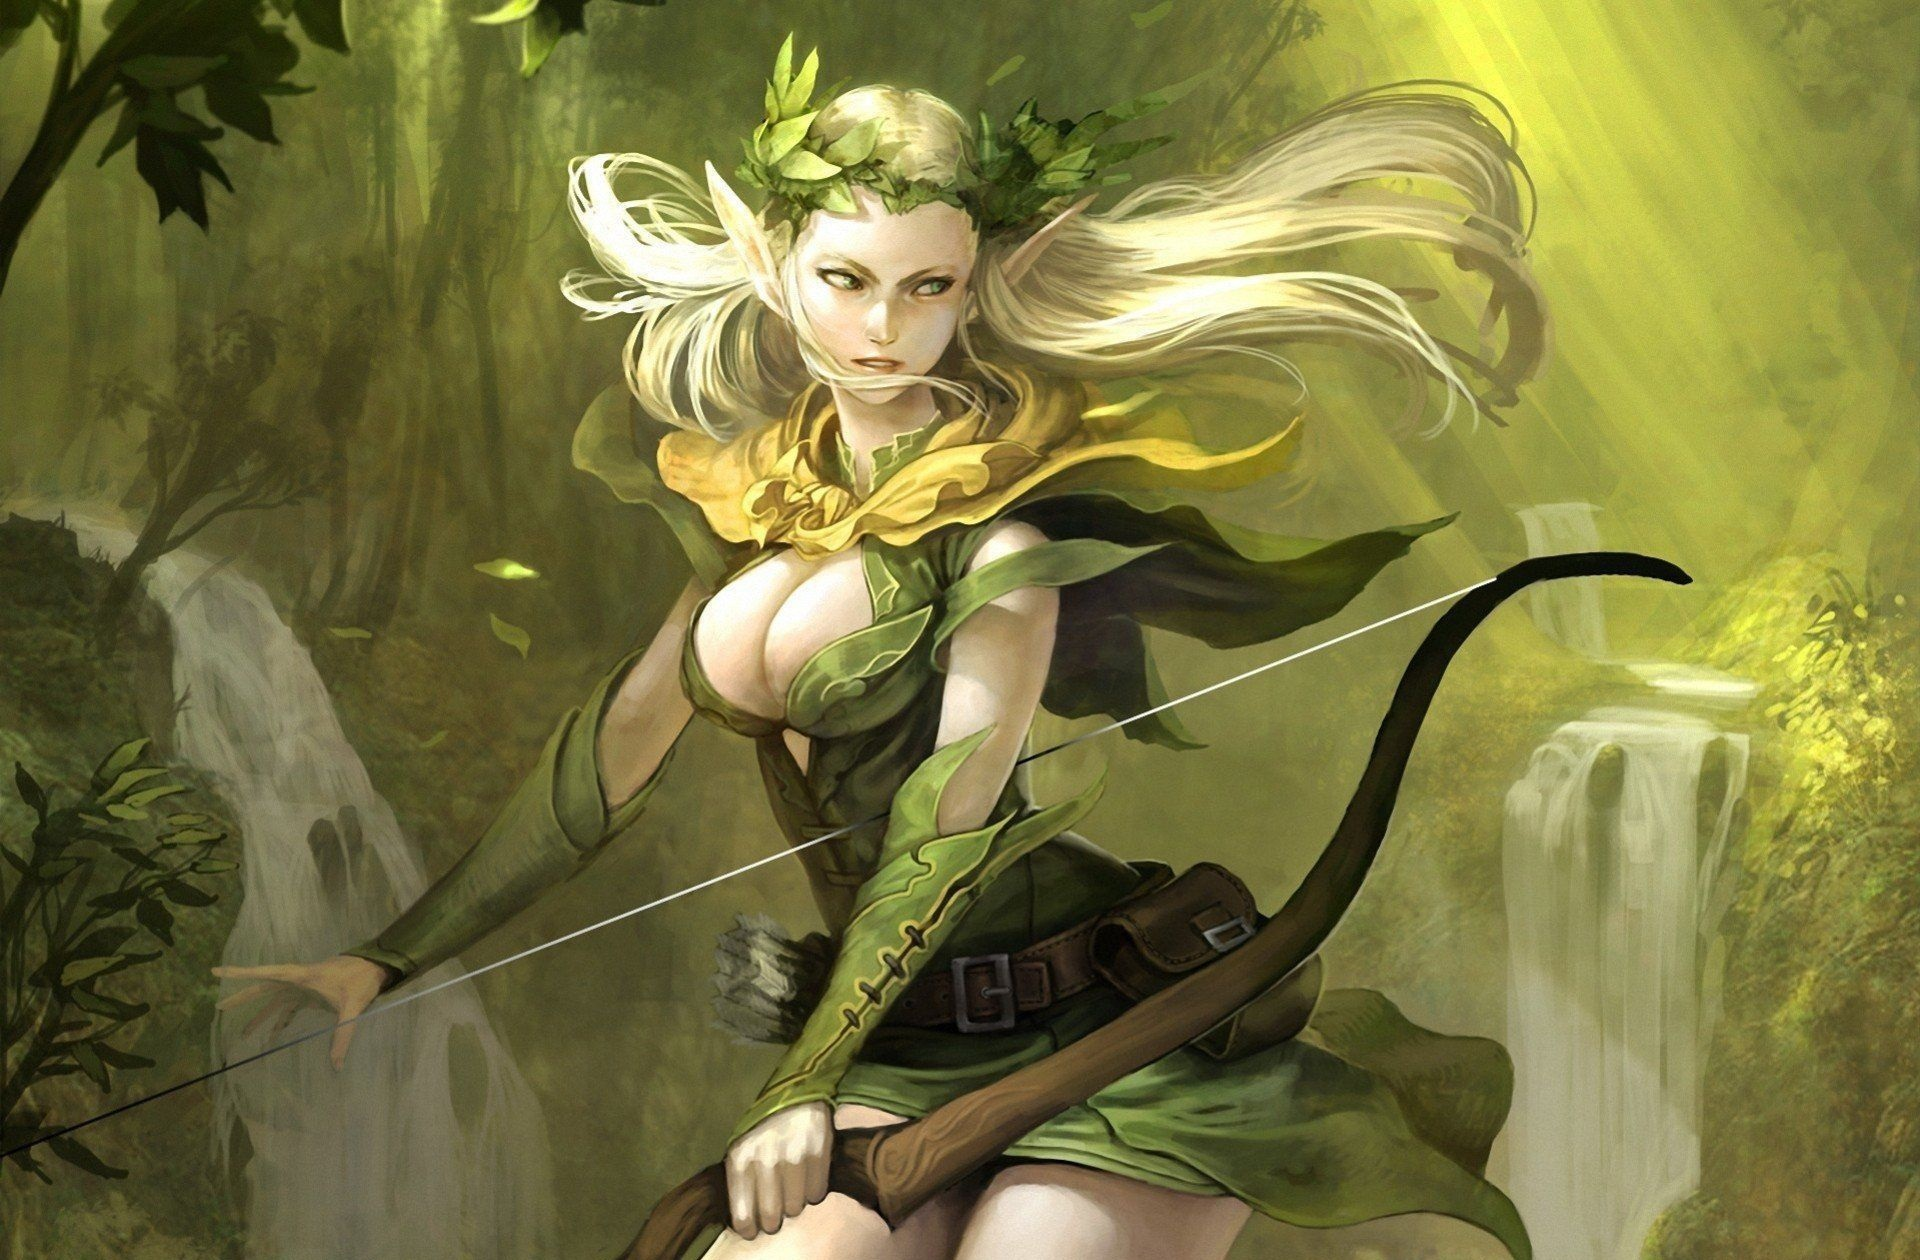 Archer Warrior Elves Fantasy Art Wallpapers Hd: Archer Wallpapers Backgrounds